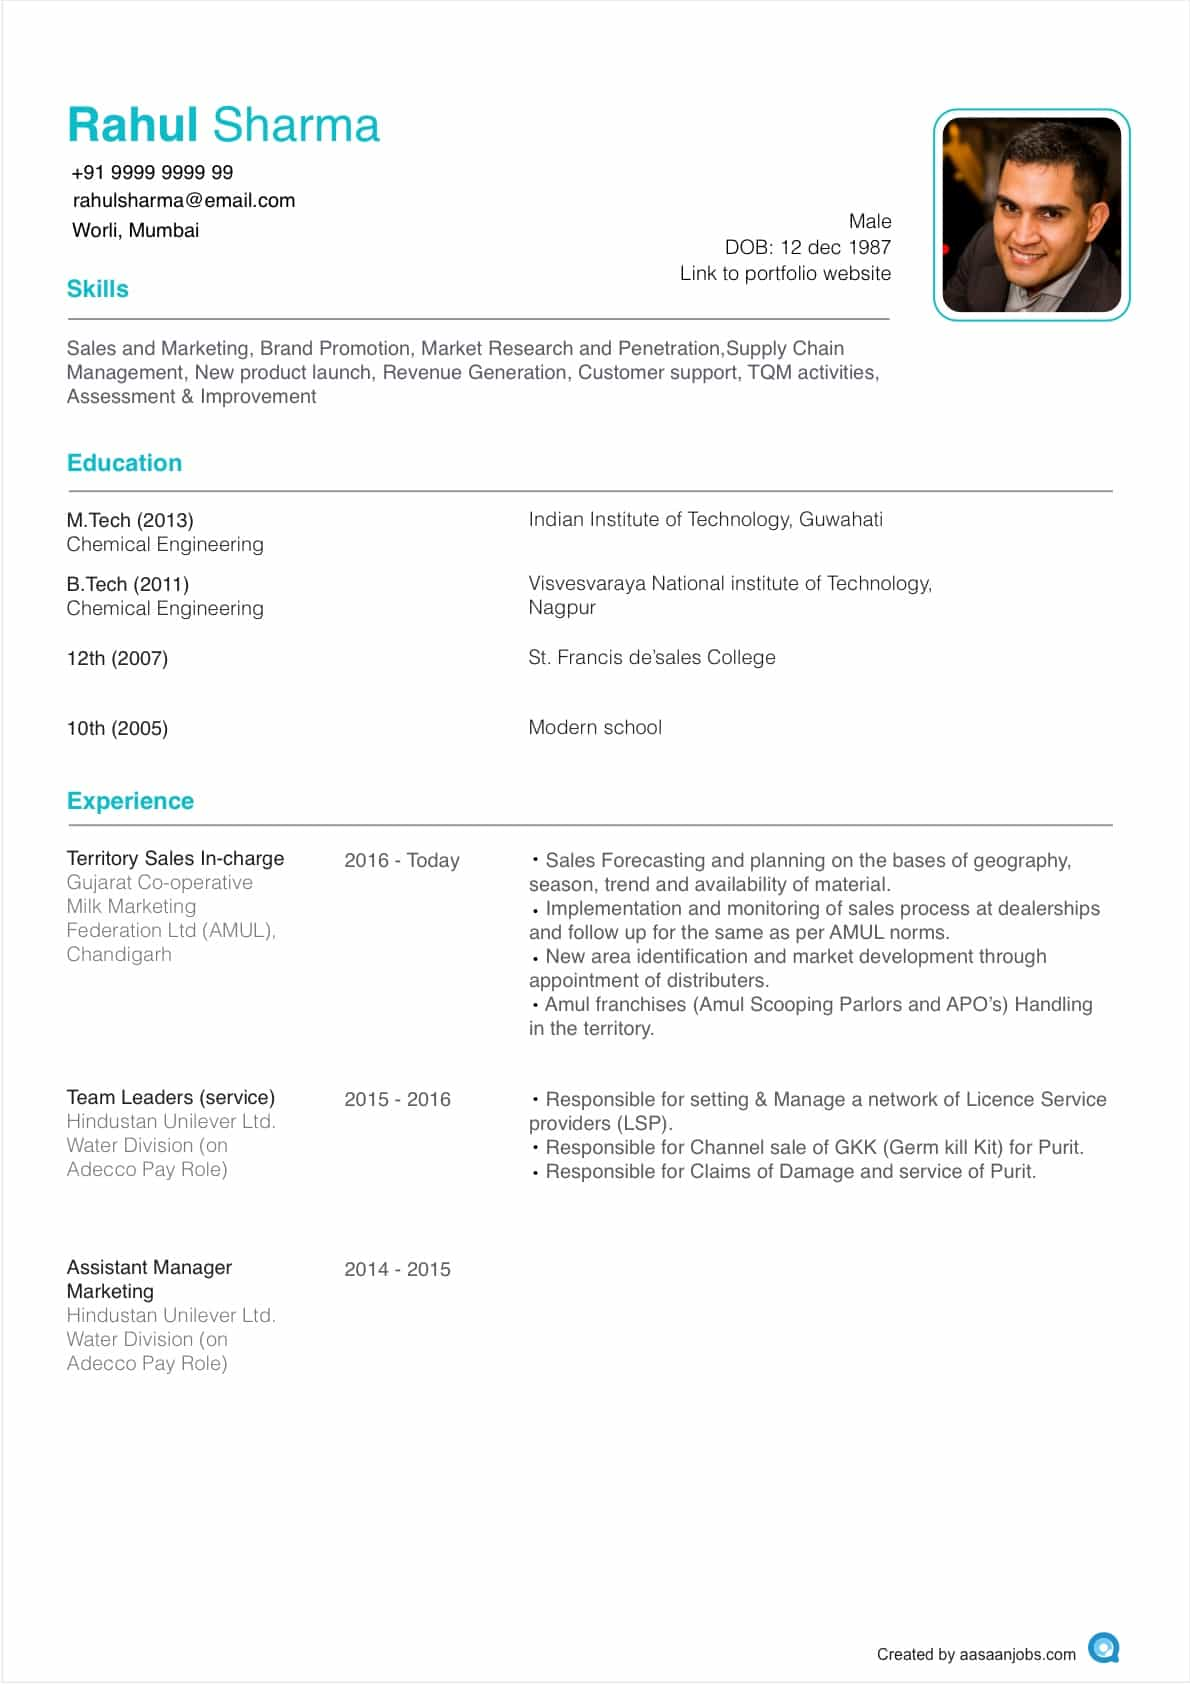 Wonderful Subtle Subtle Resume Format  Resume Formate